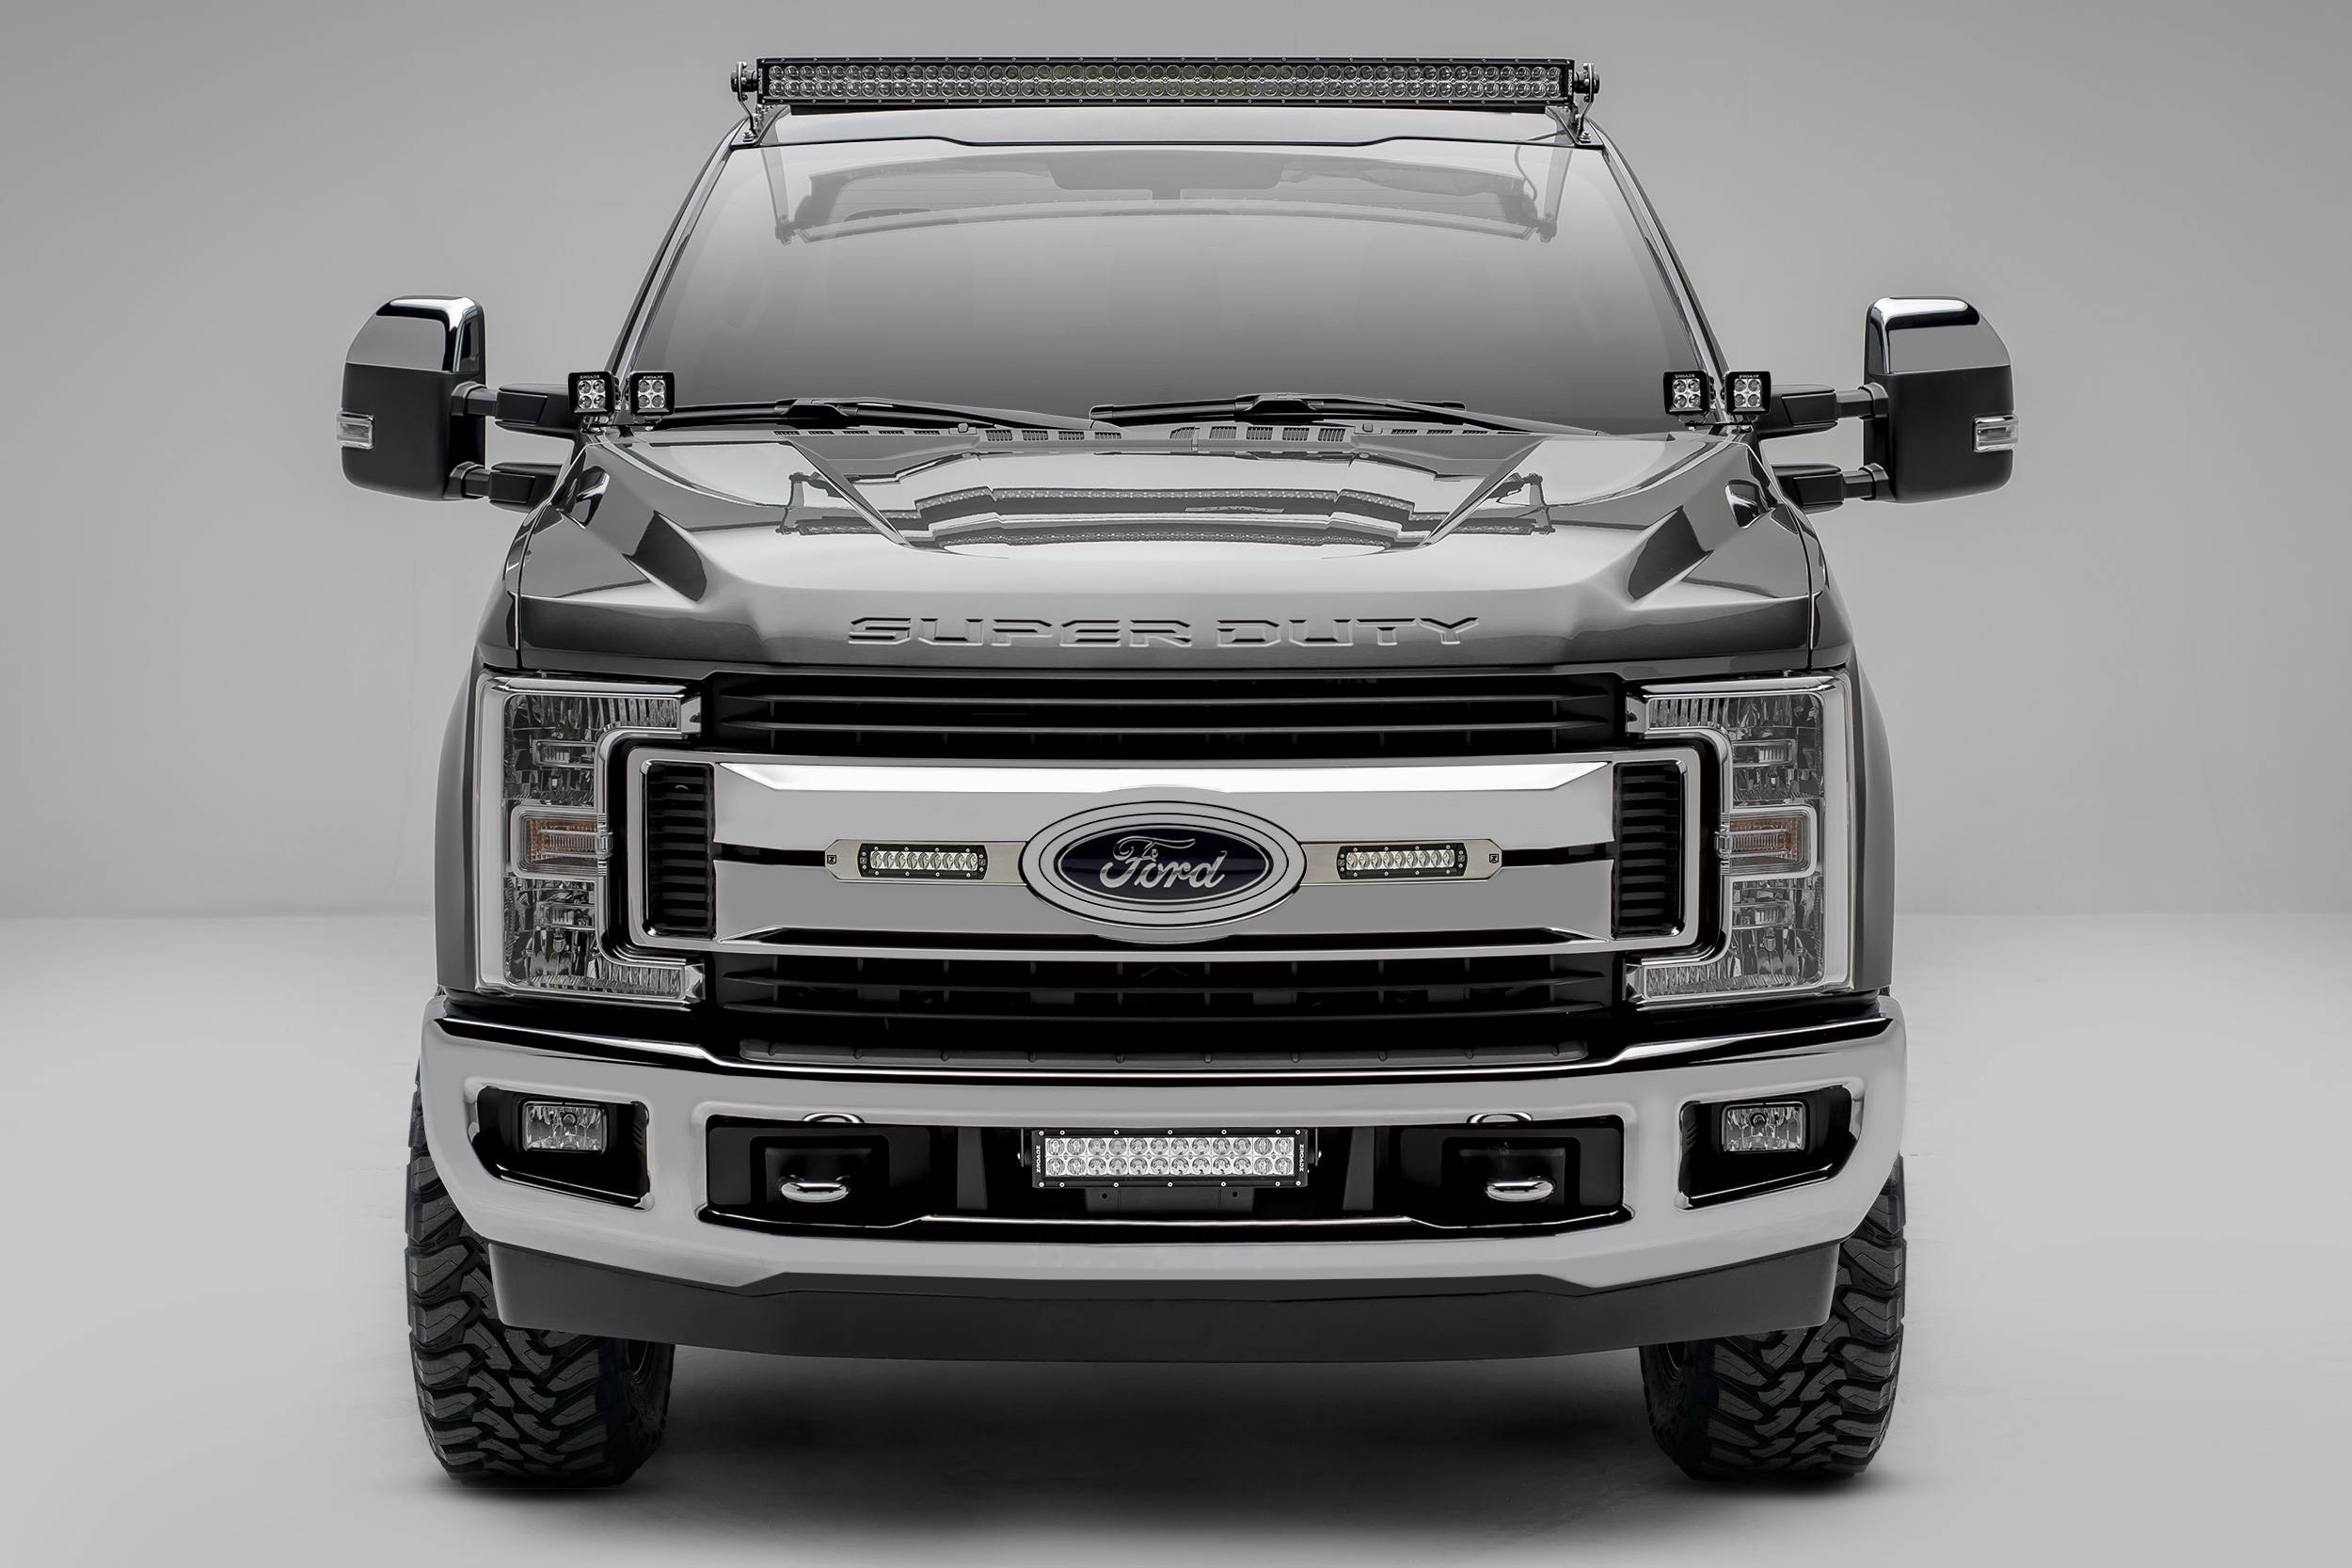 2017 2019 Ford Super Duty Front Roof Led Bracket To Mount